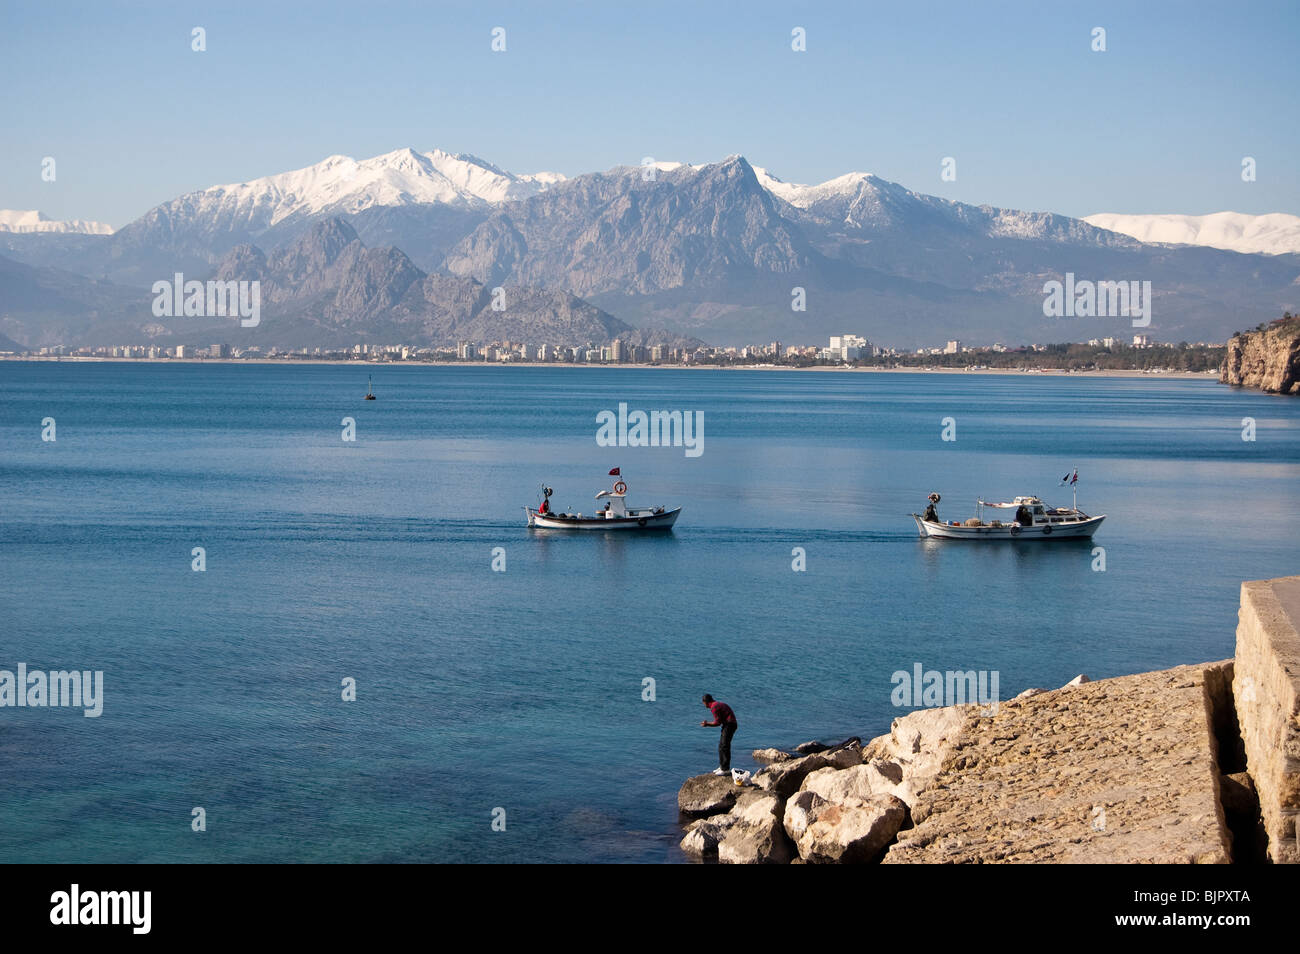 View of Taurus Mountains from the harbour of Old Antalya, Turkey Stock Photo